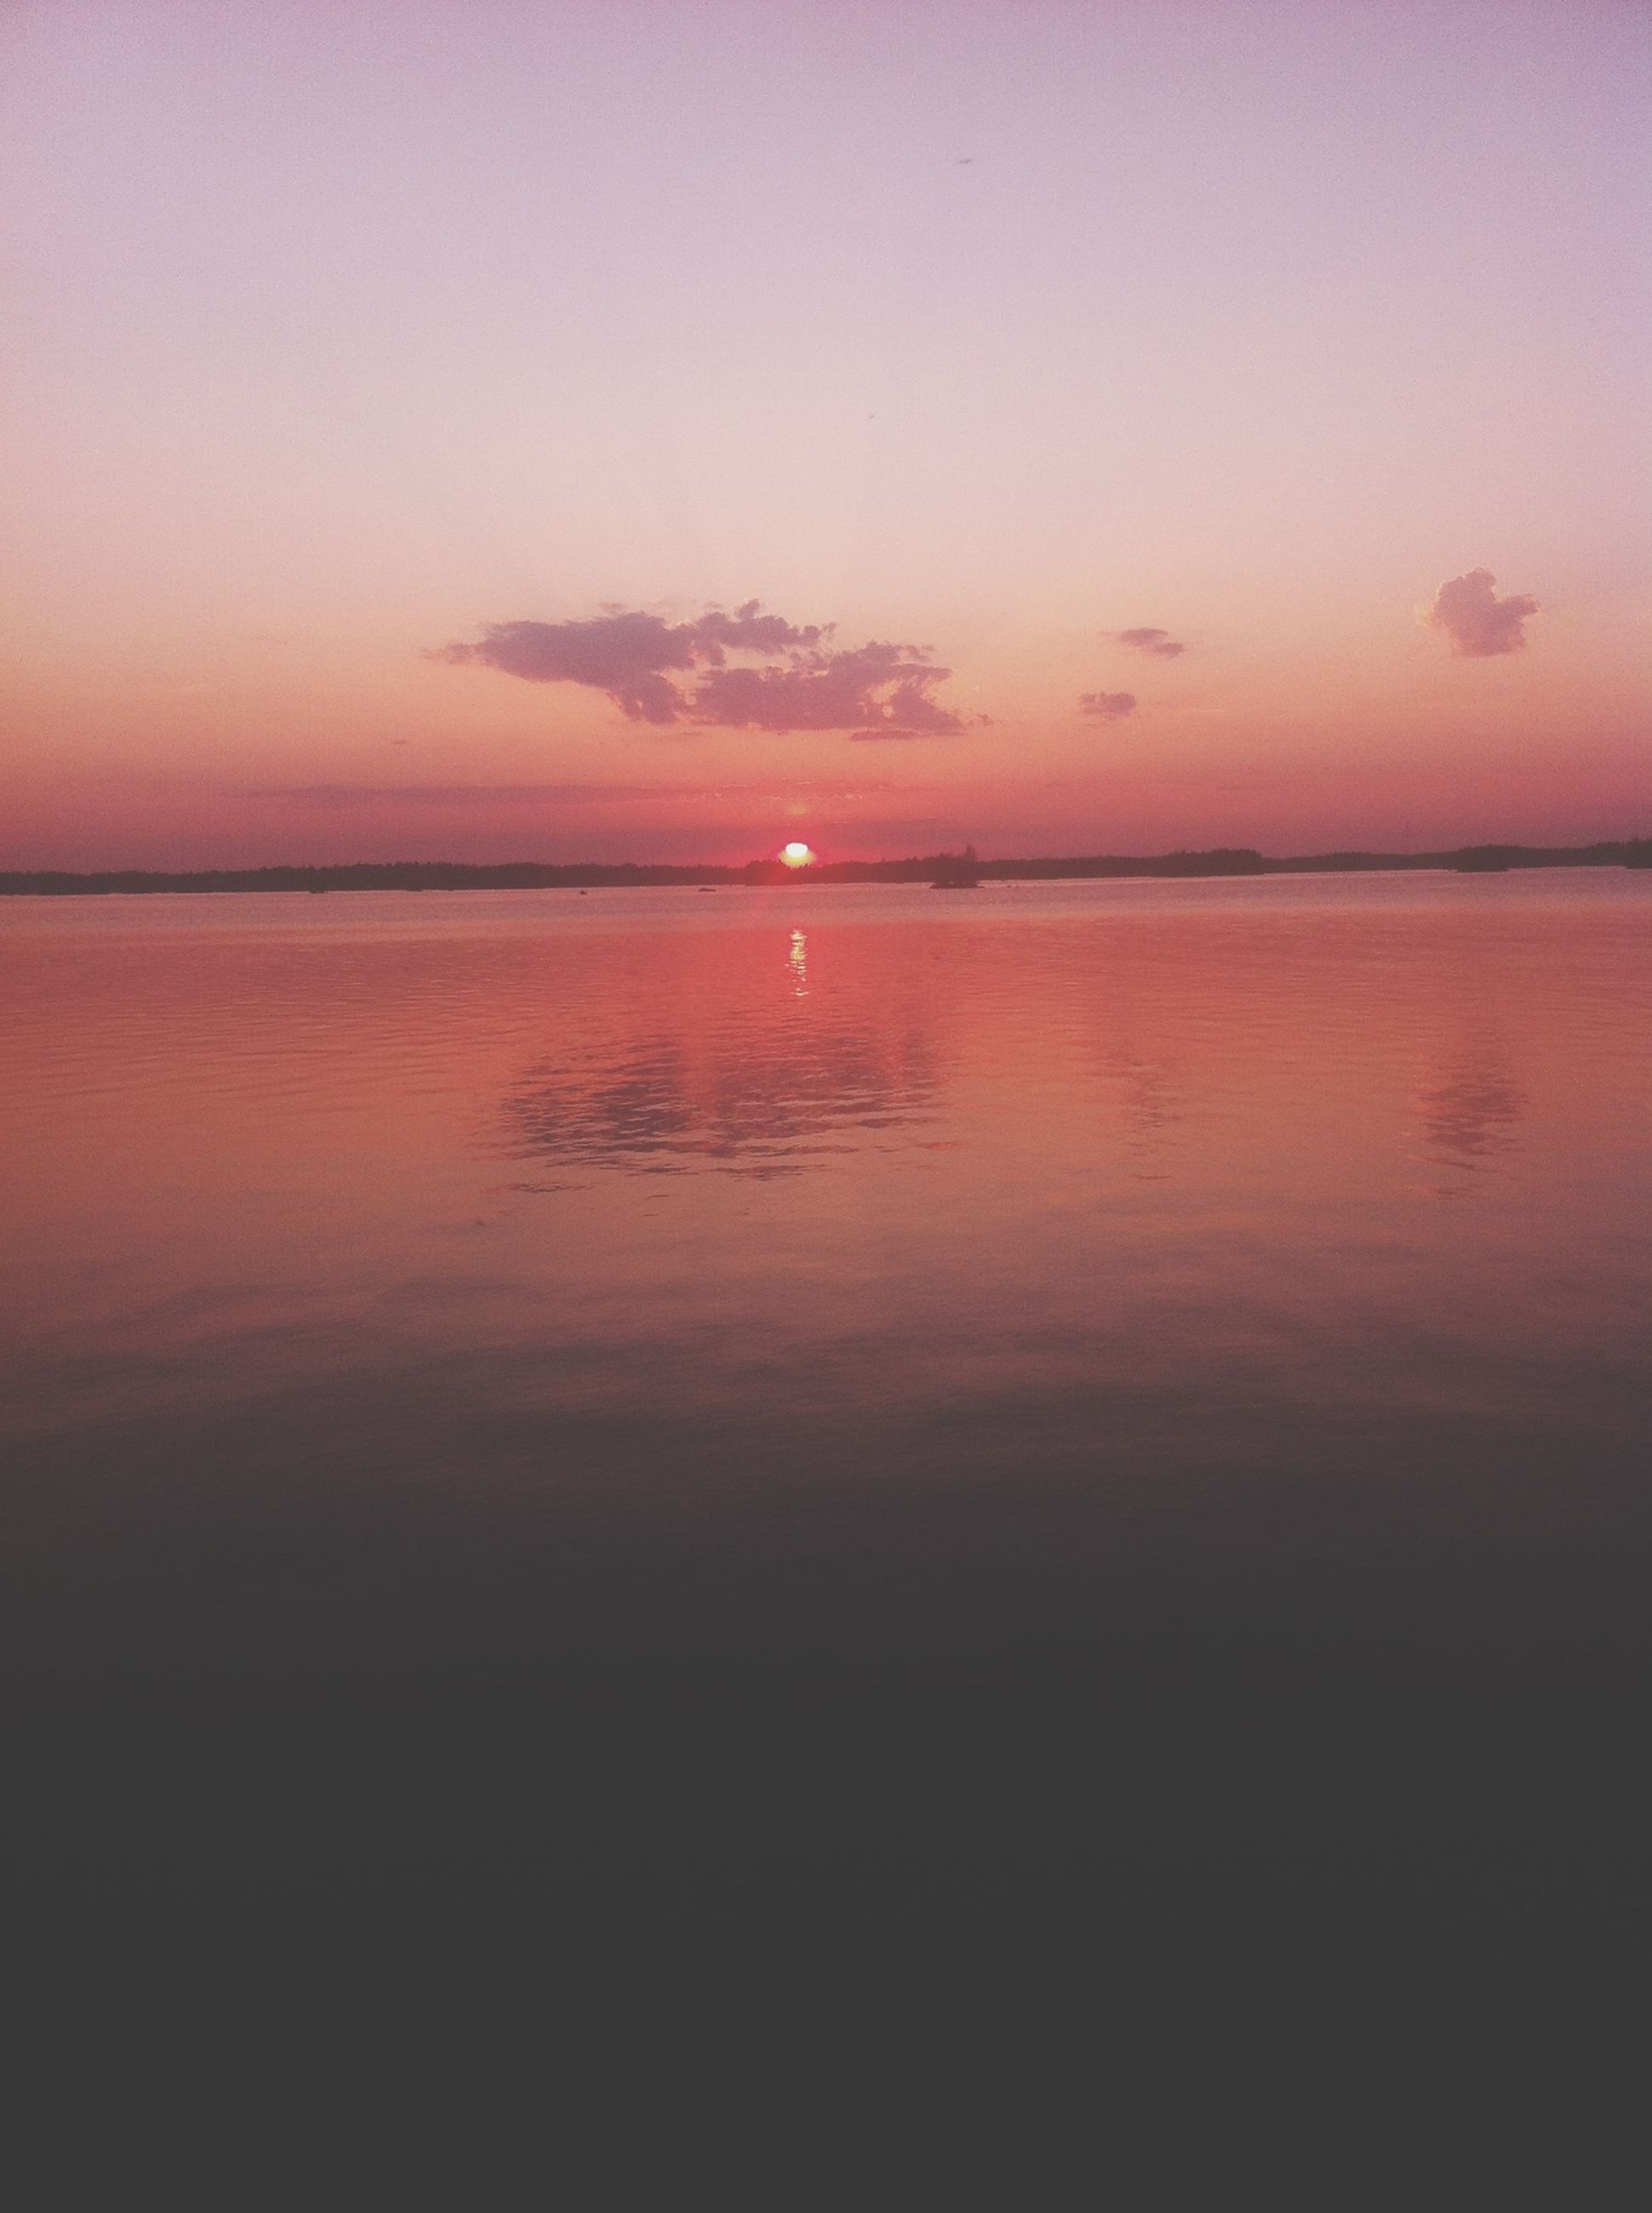 sunset, water, tranquil scene, scenics, sea, tranquility, beauty in nature, horizon over water, orange color, sun, sky, idyllic, reflection, nature, waterfront, silhouette, rippled, calm, outdoors, no people